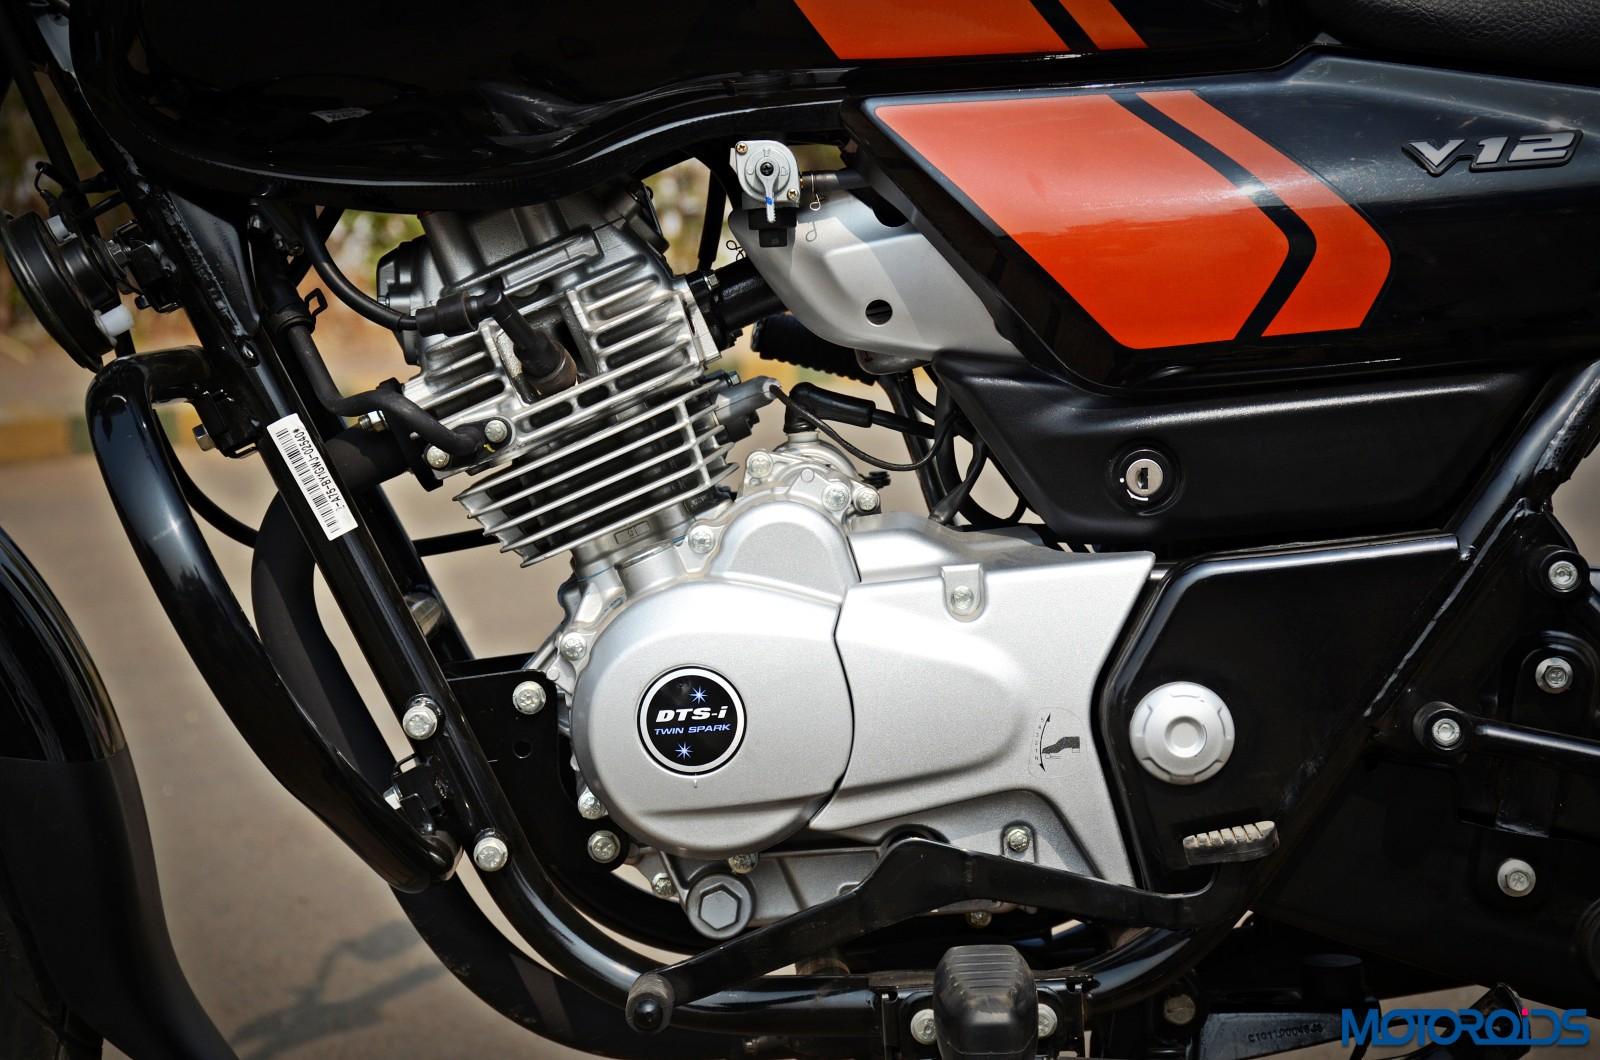 Bajaj-V12-Review-Details-34